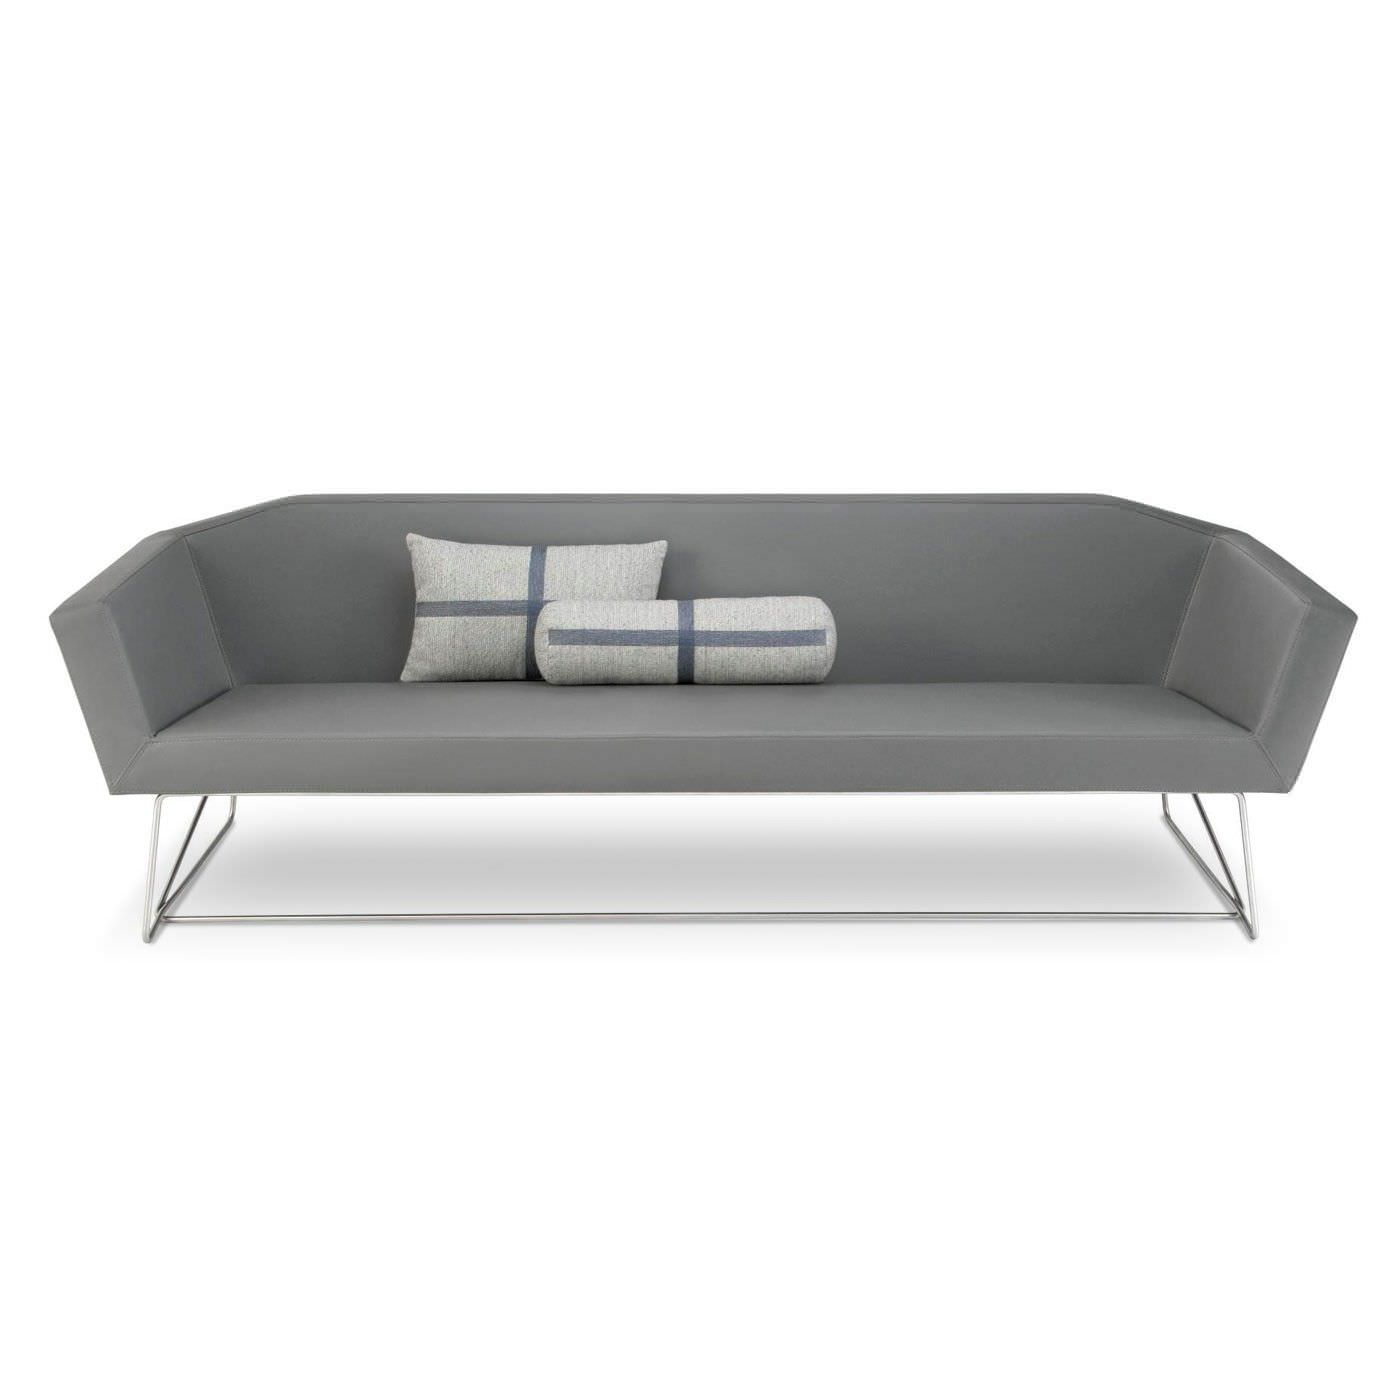 Contemporary Sofa Leather Stainless Steel White